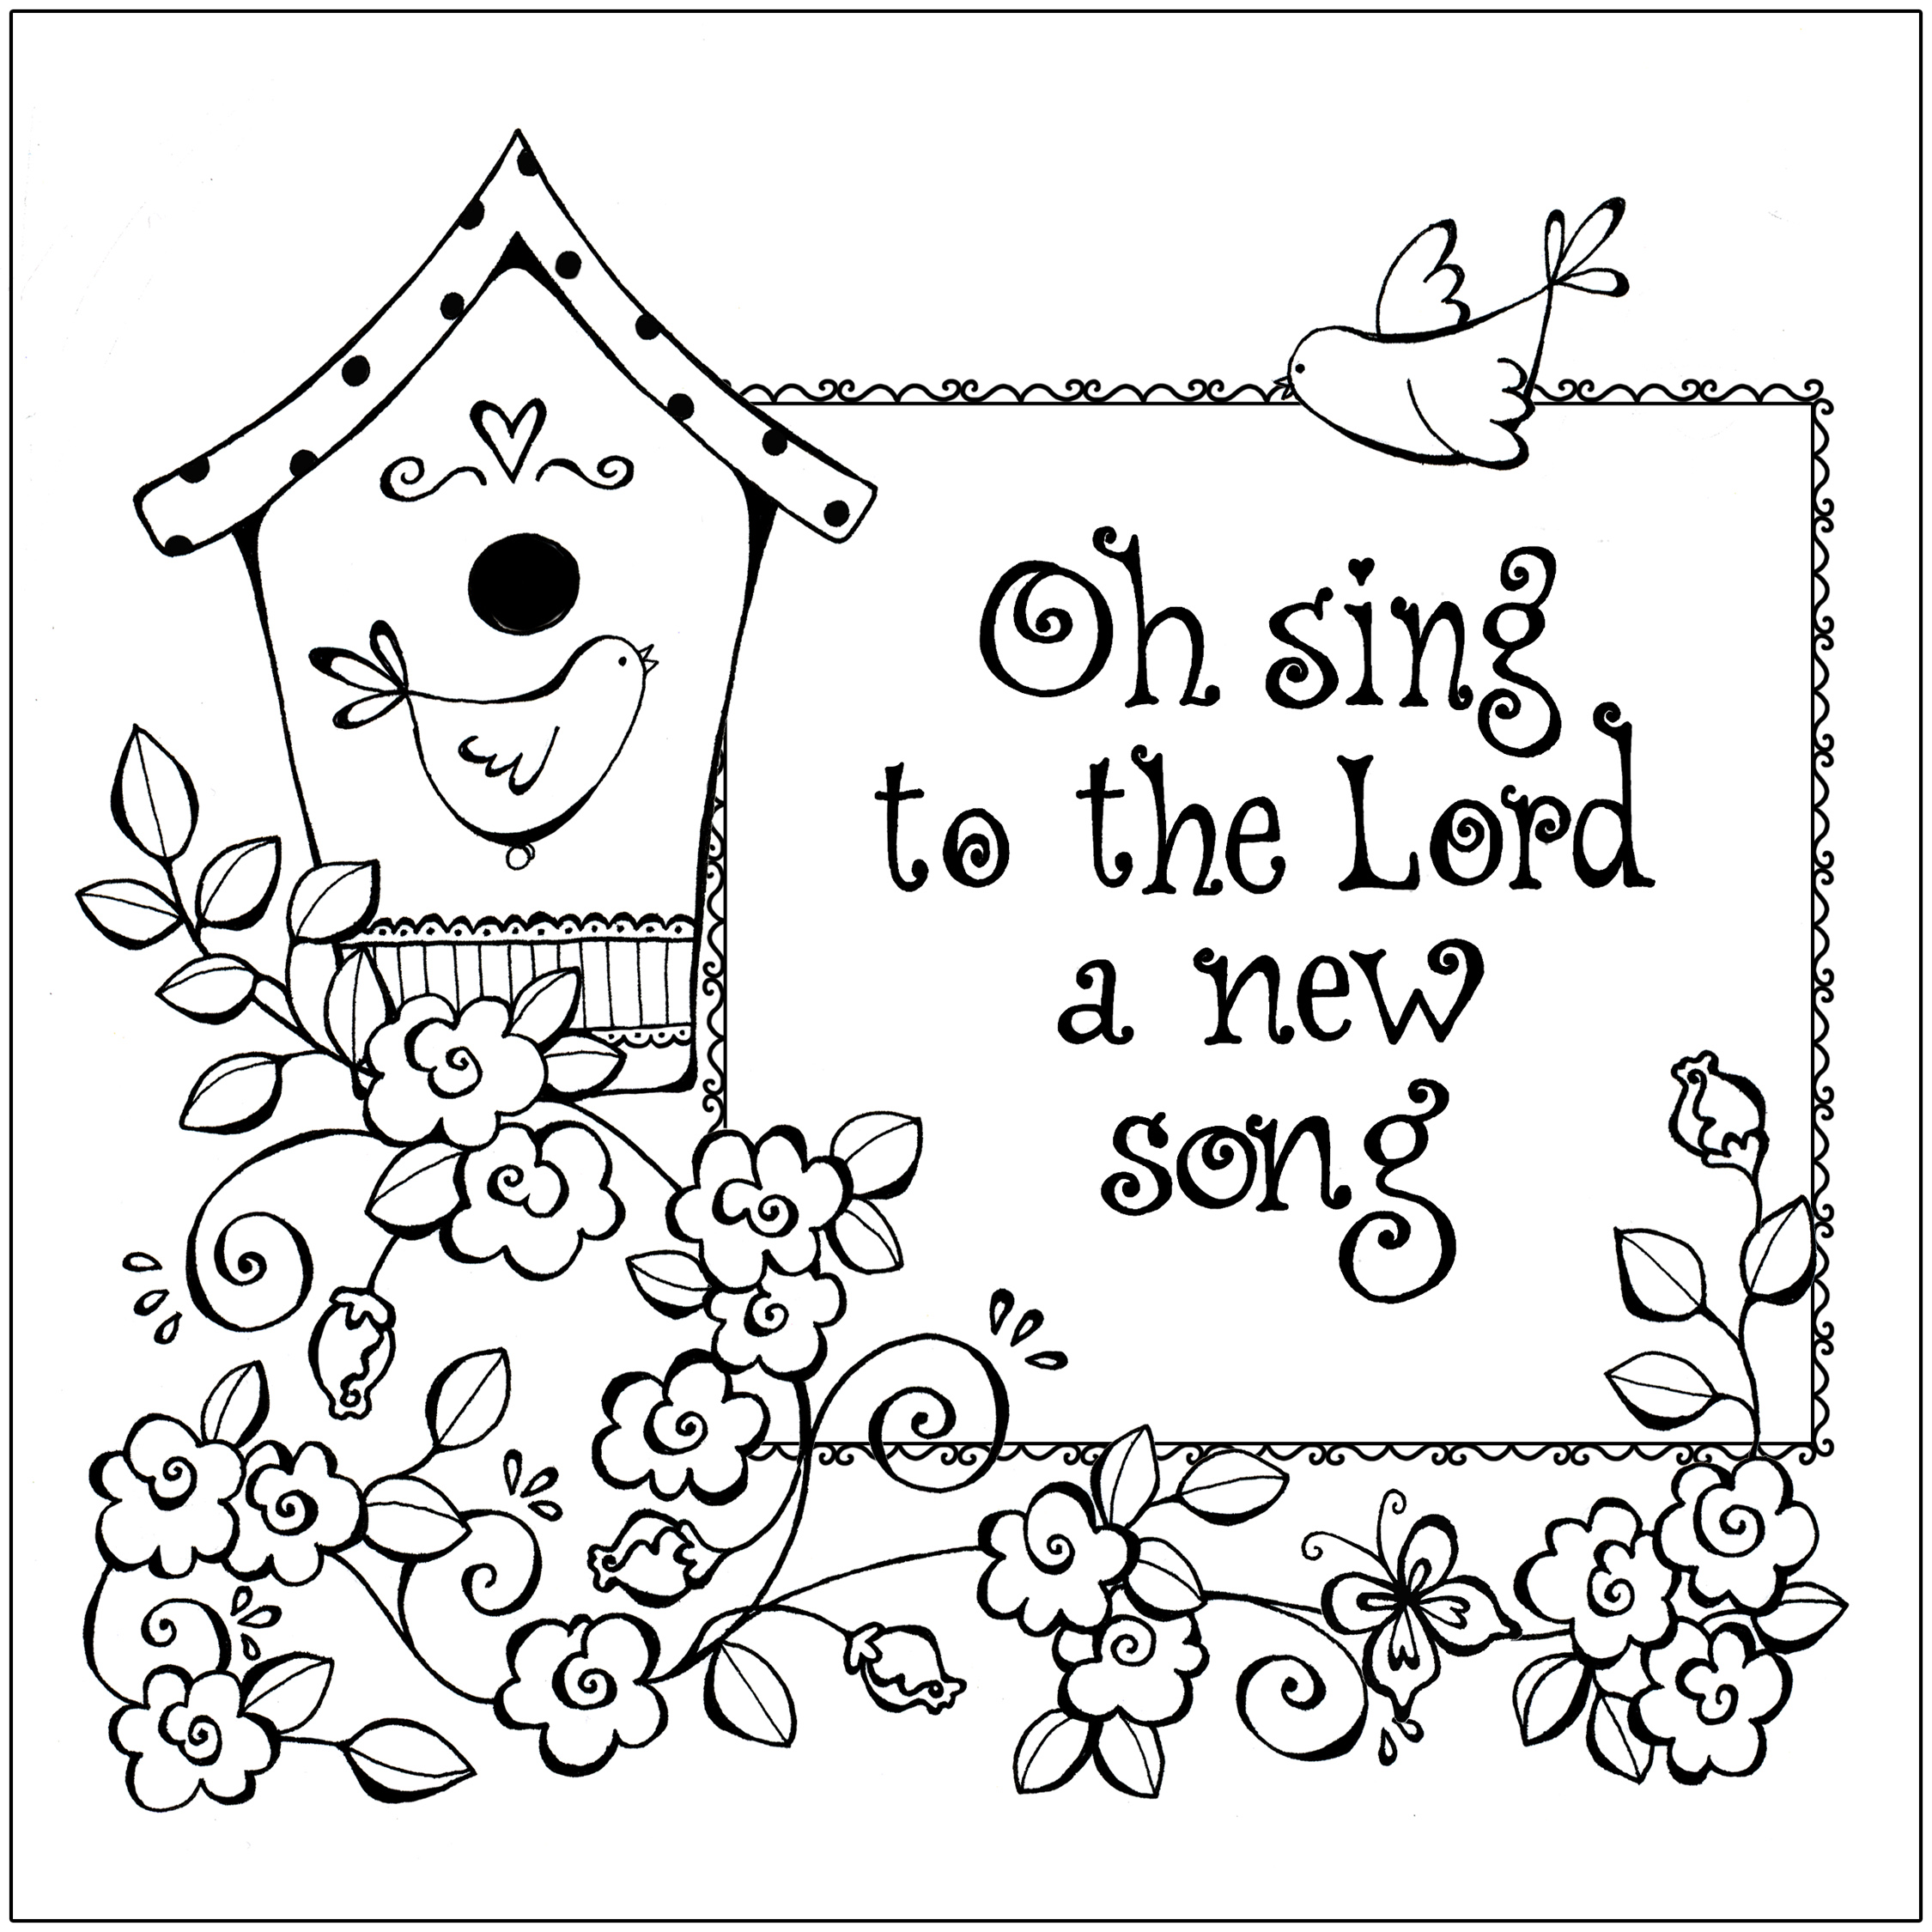 Coloring Pages Are A Great Way To Teach Children God S Word And Wisdom